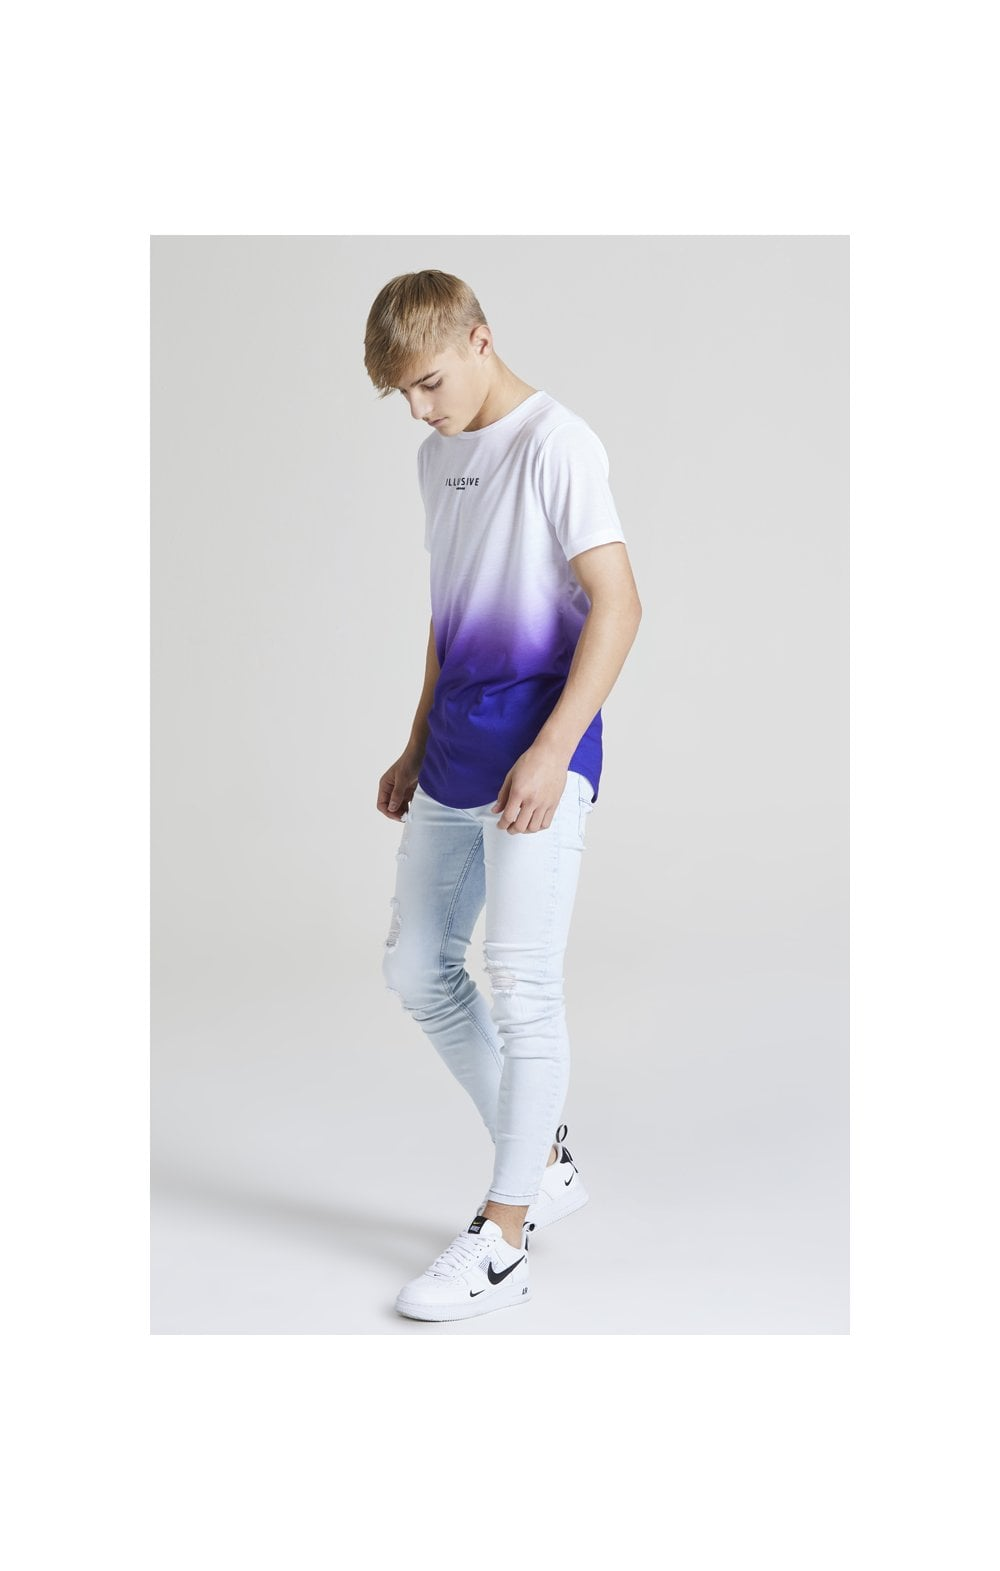 Load image into Gallery viewer, Illusive London Core Fade Tee – White & Purple (2)